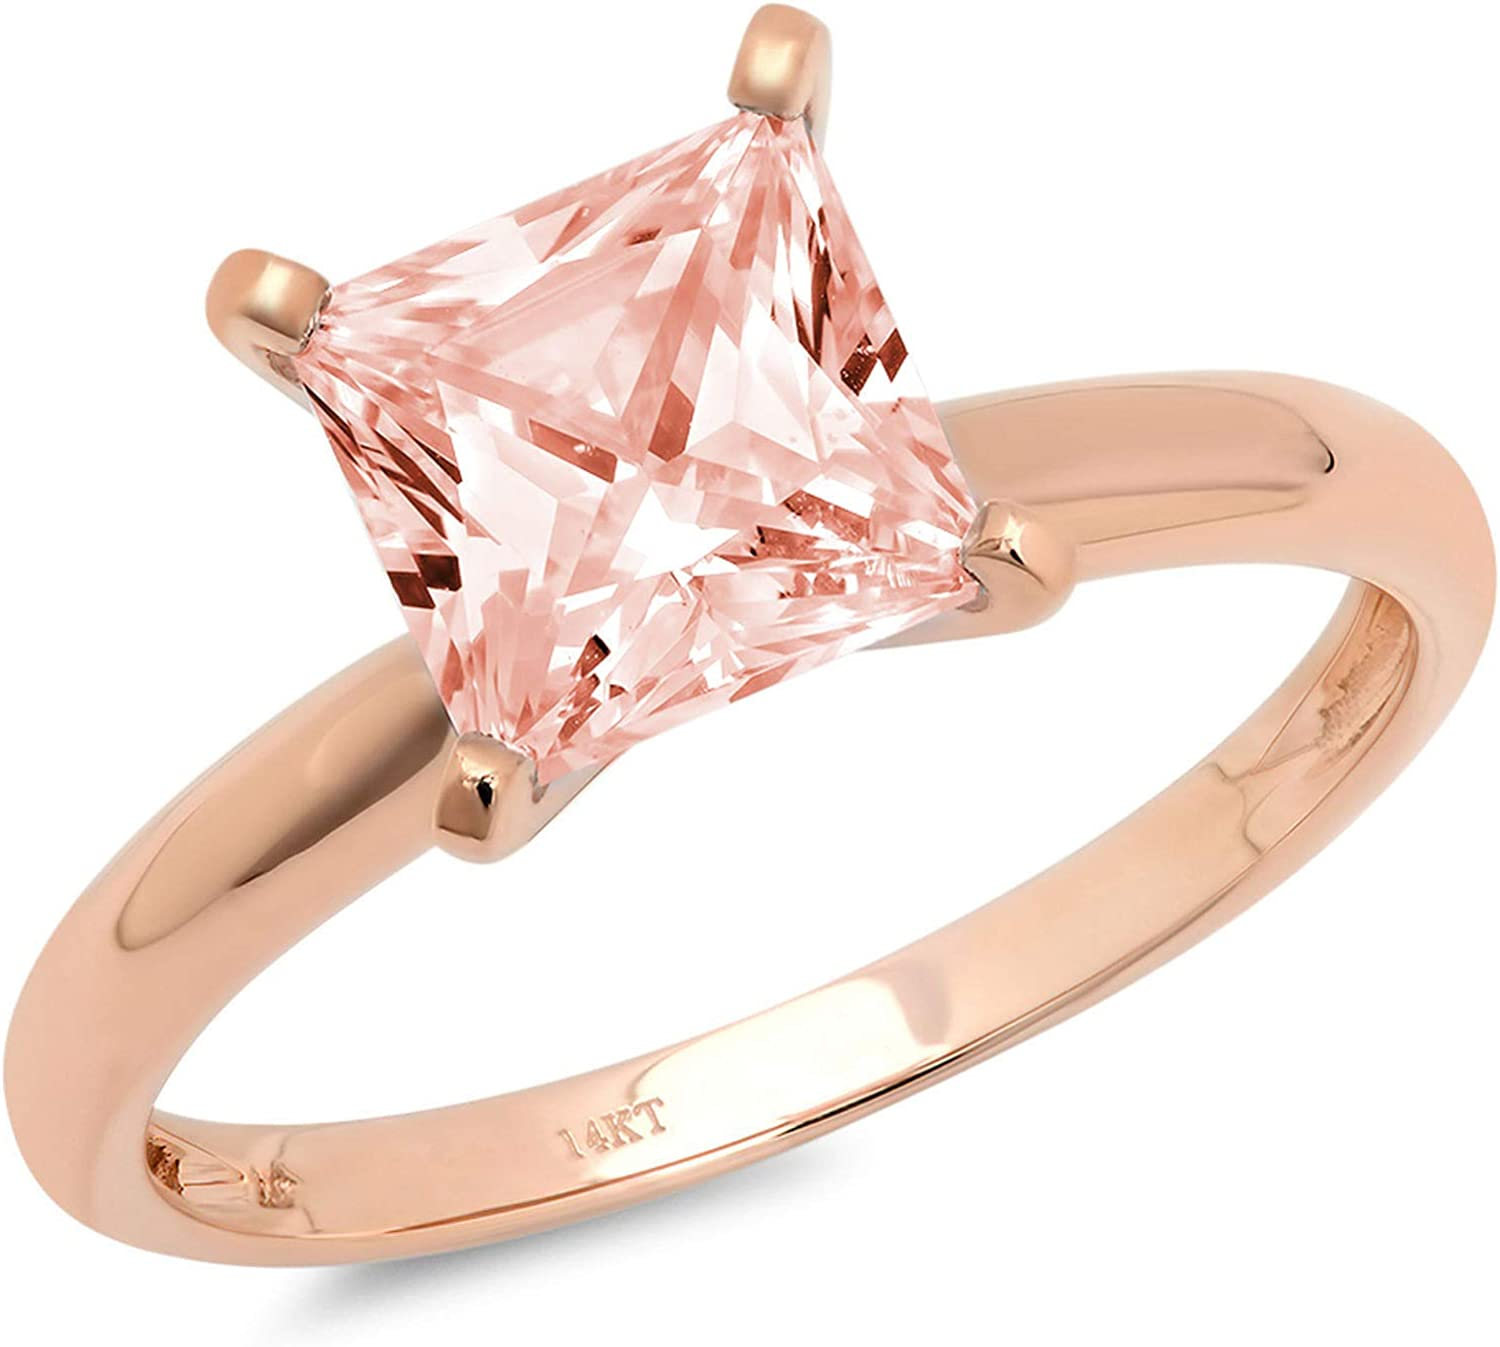 2.95ct Brilliant Princess Cut Solitaire Pink Simulated Diamond CZ Ideal VVS1 D 4-Prong Classic Designer Statement Ring Solid Real 14k Rose Gold for Women